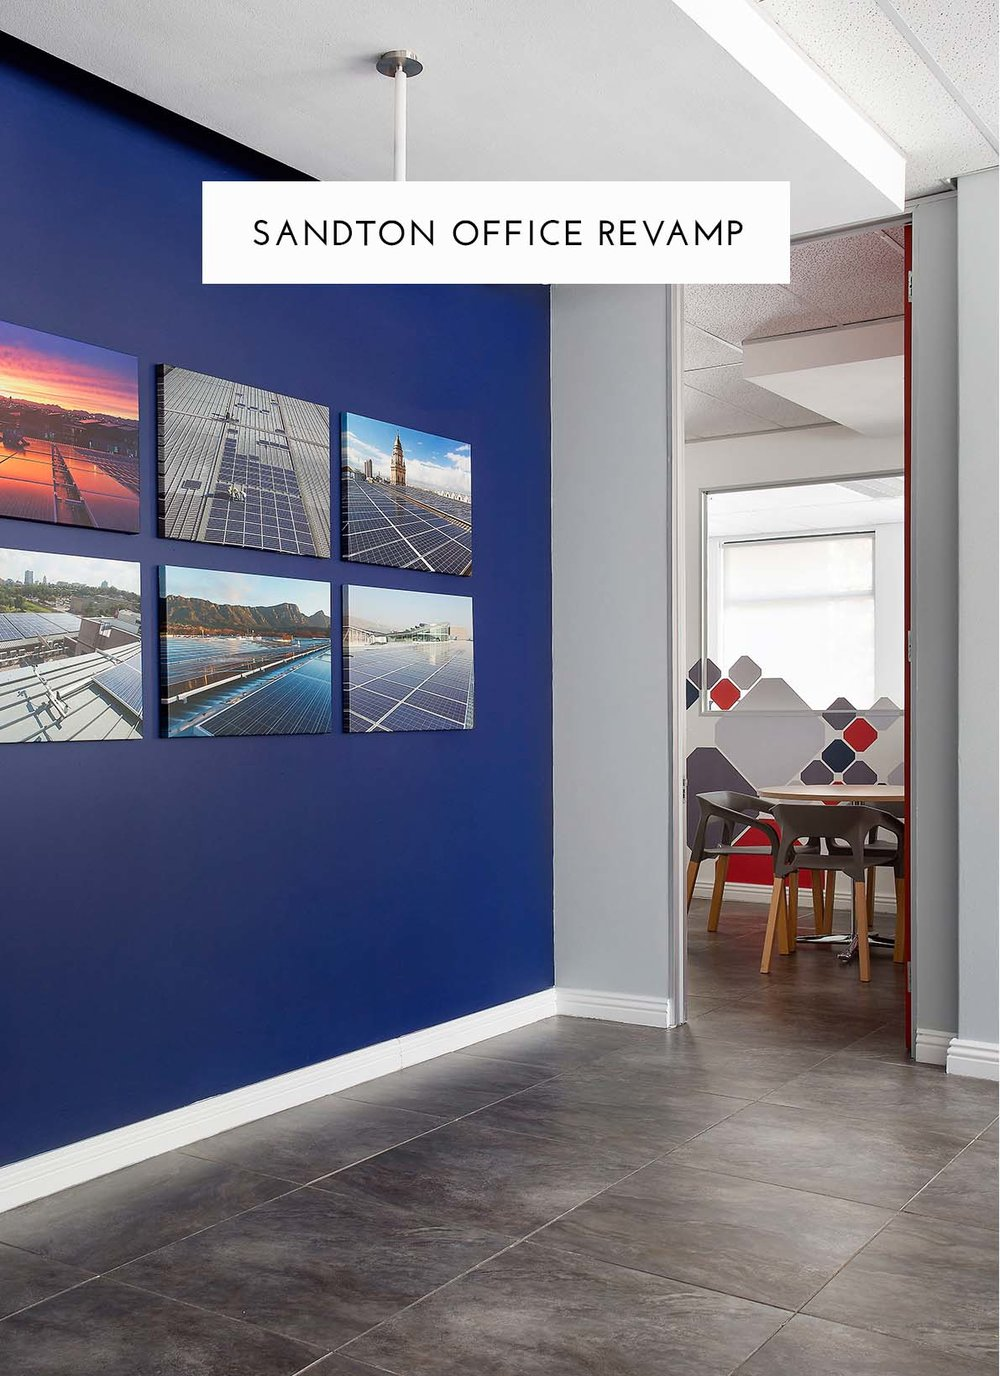 Sandton office revamp.jpg